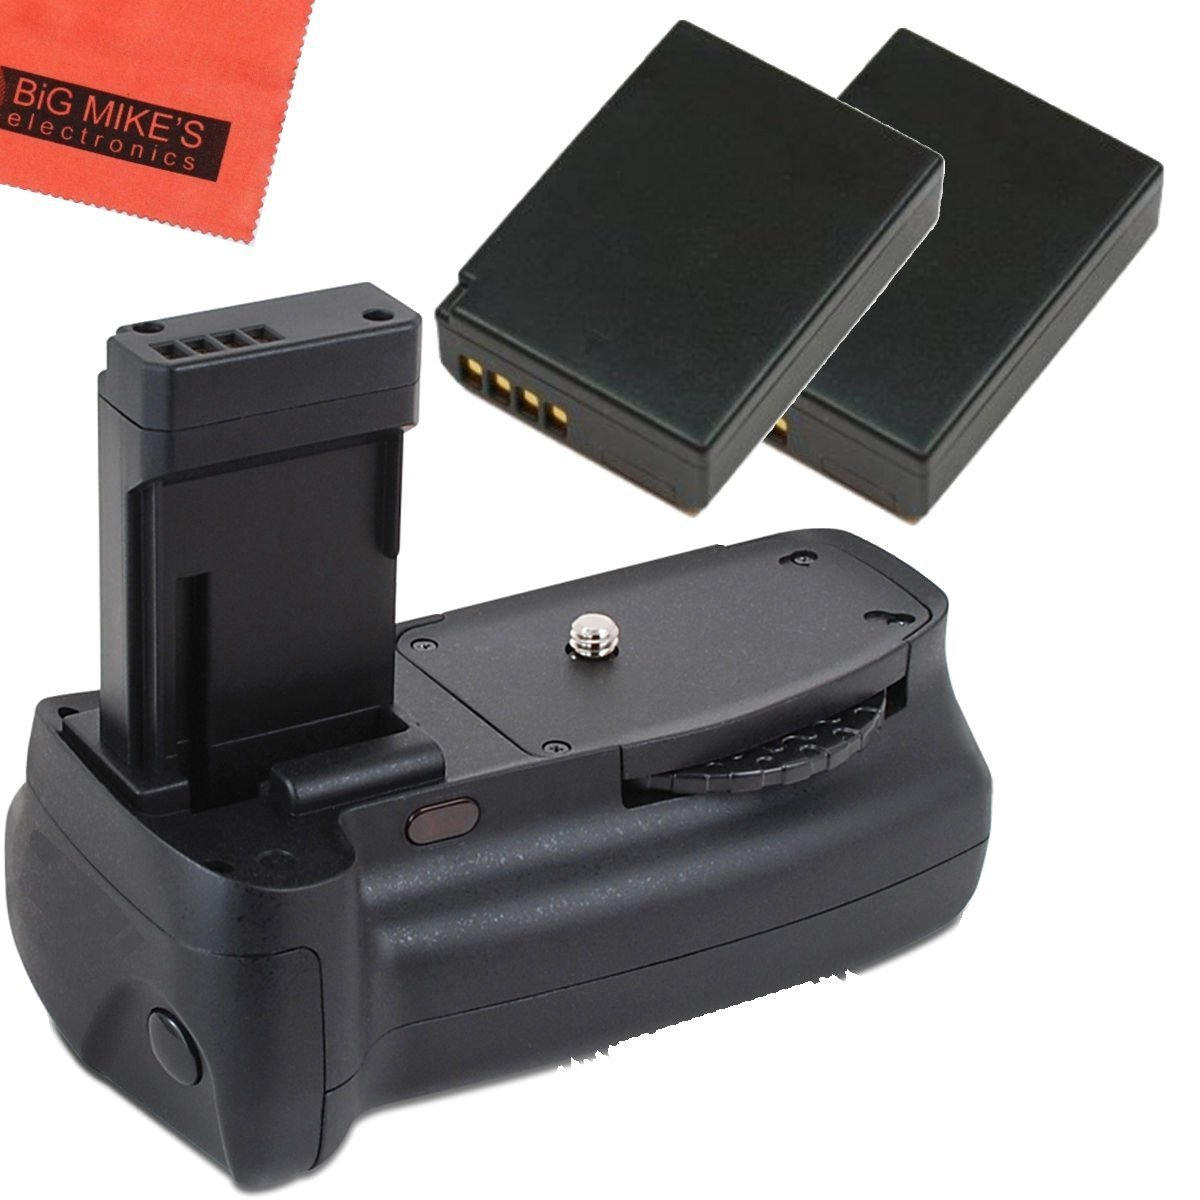 Battery Grip Kit for Canon EOS Rebel T3, T5, T6, Kiss X50, Kiss X70, EOS  1100D, EOS 1200D, EOS 1300D Digital SLR Camera Includes Qty 2 Replacement